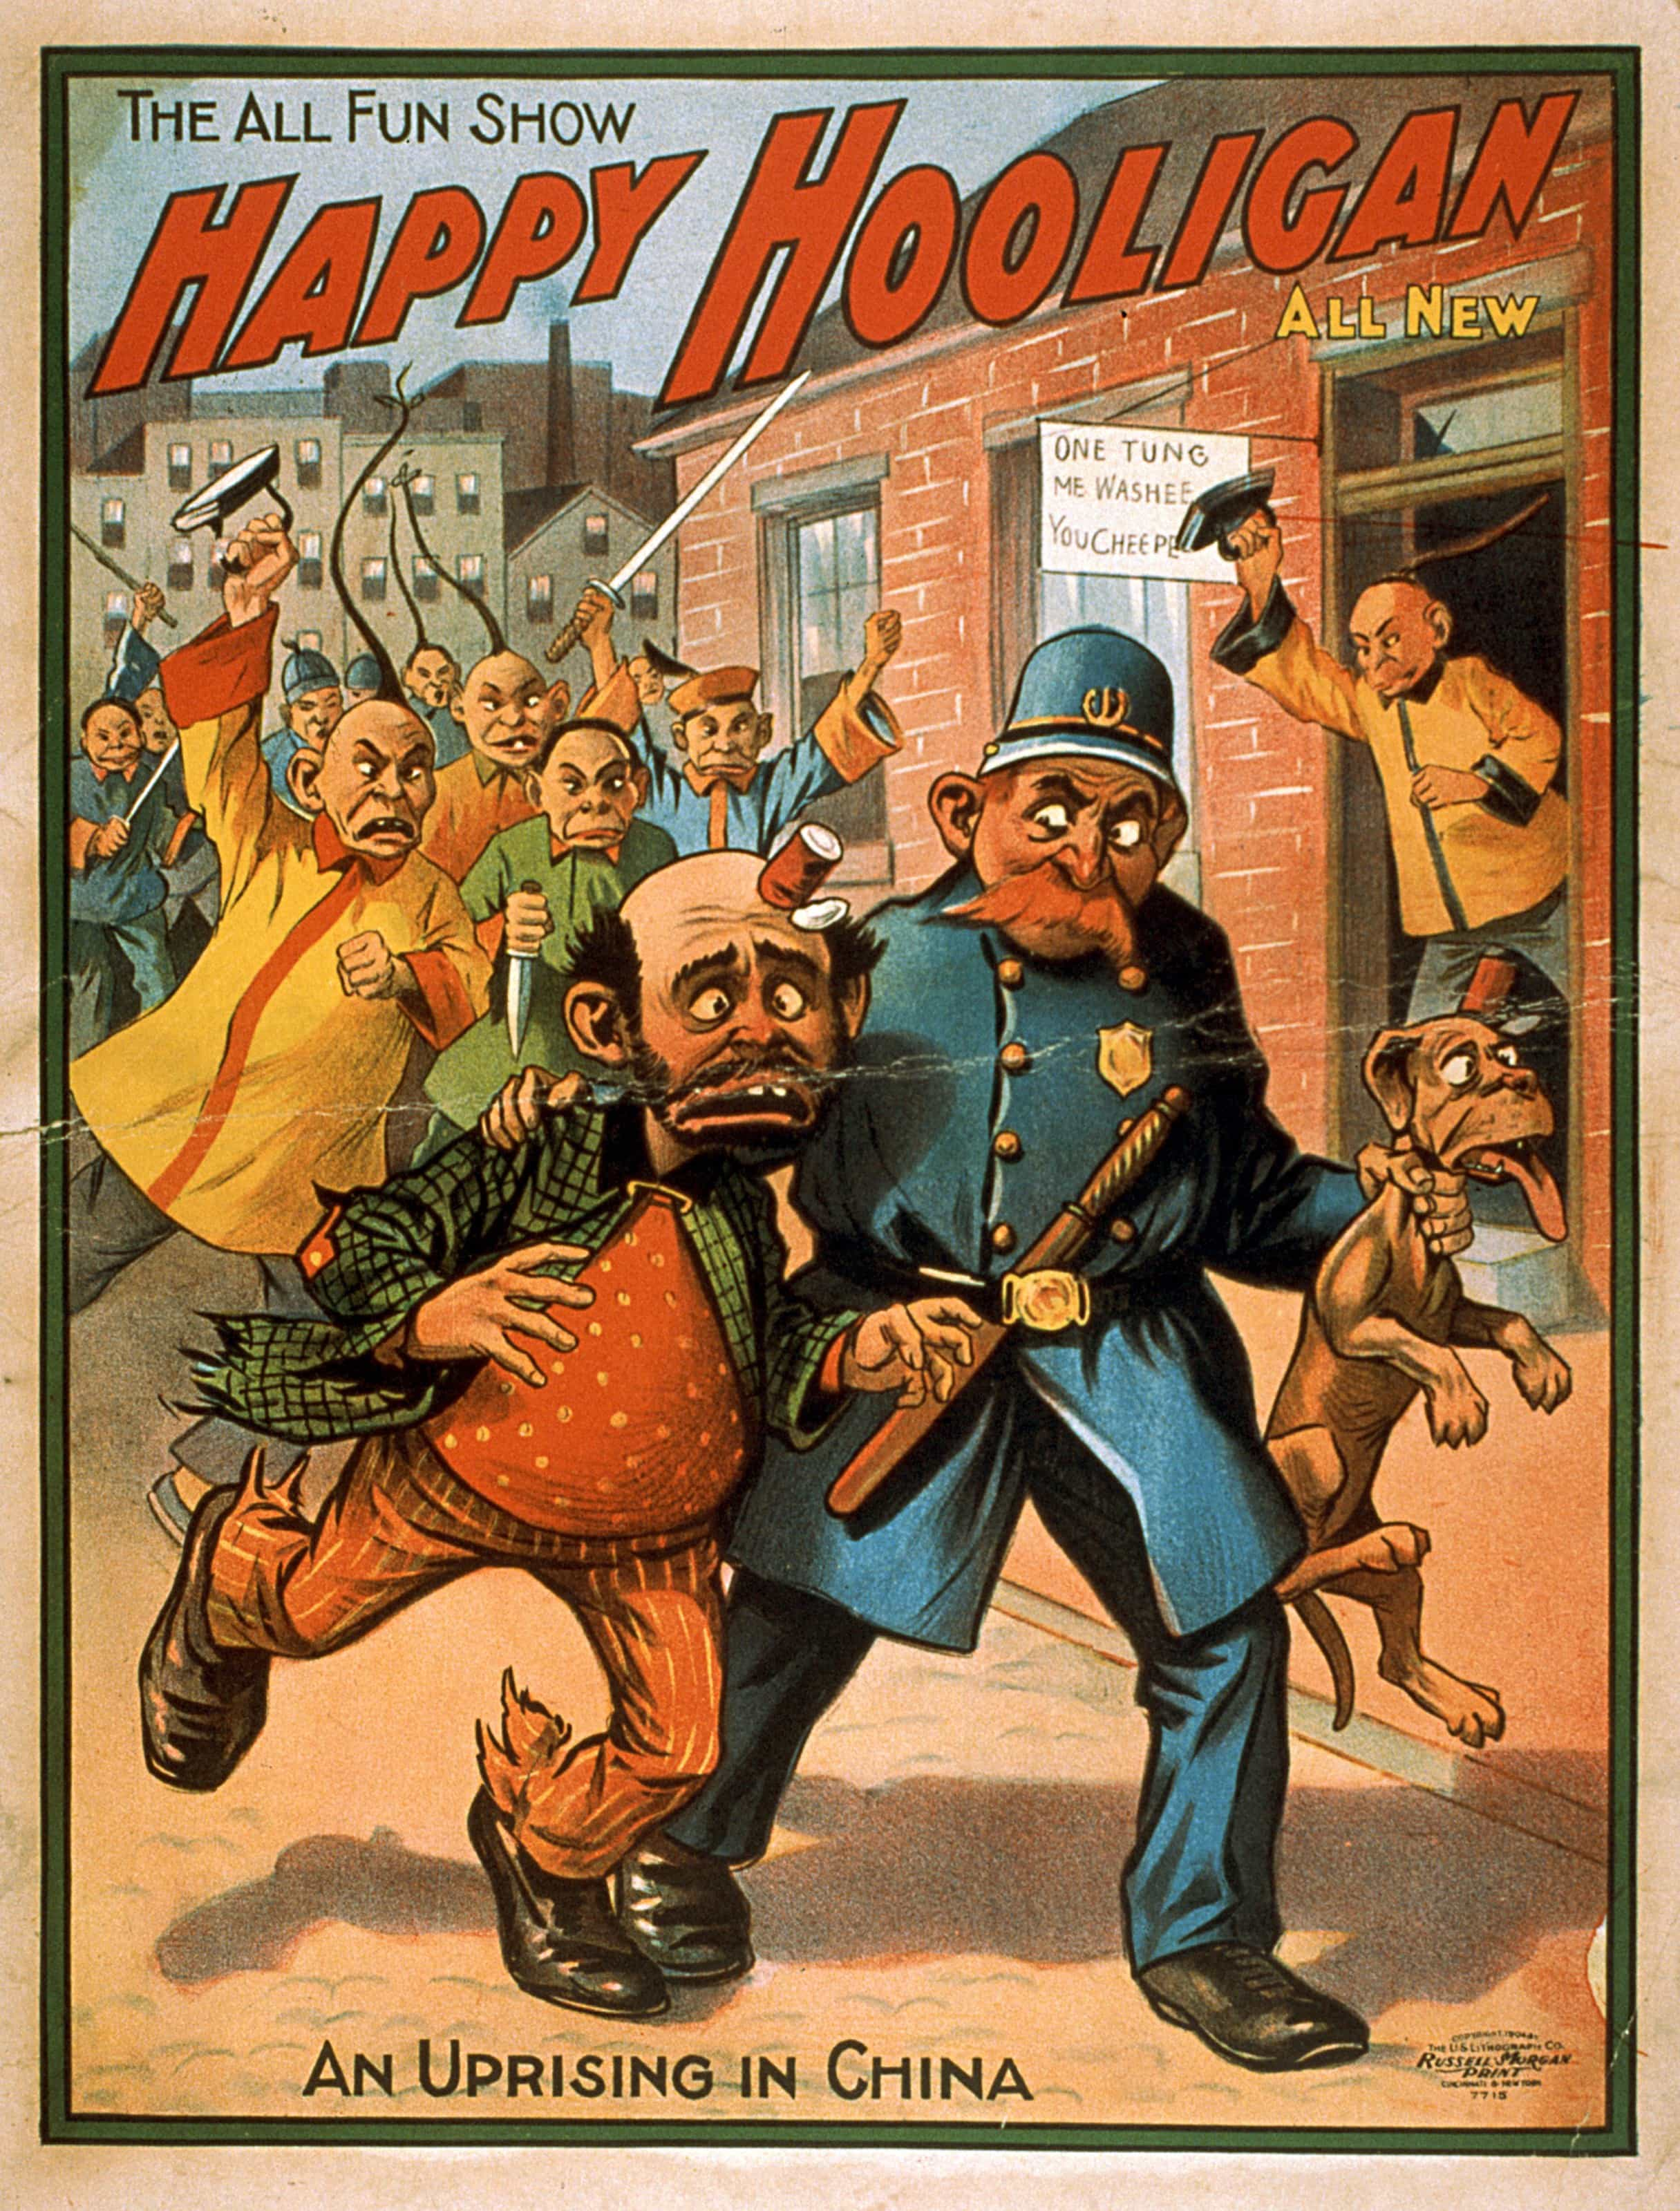 Vintage Theater Posters: Happy Hooligan- The All Fun Show, 1904